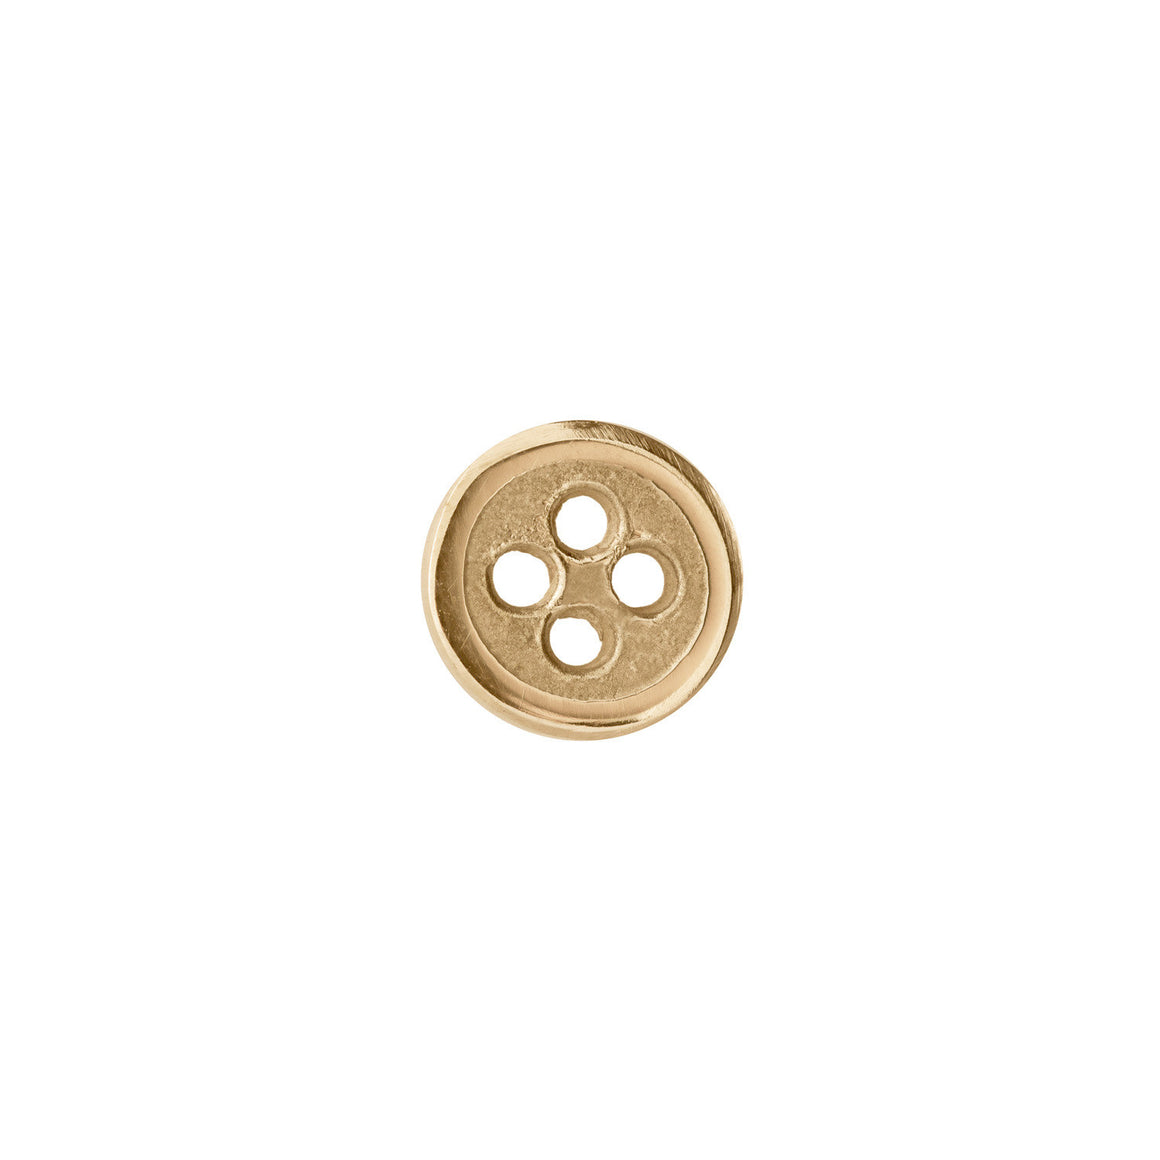 Button Lapel Pin or Tie Tack in 14ct Gold